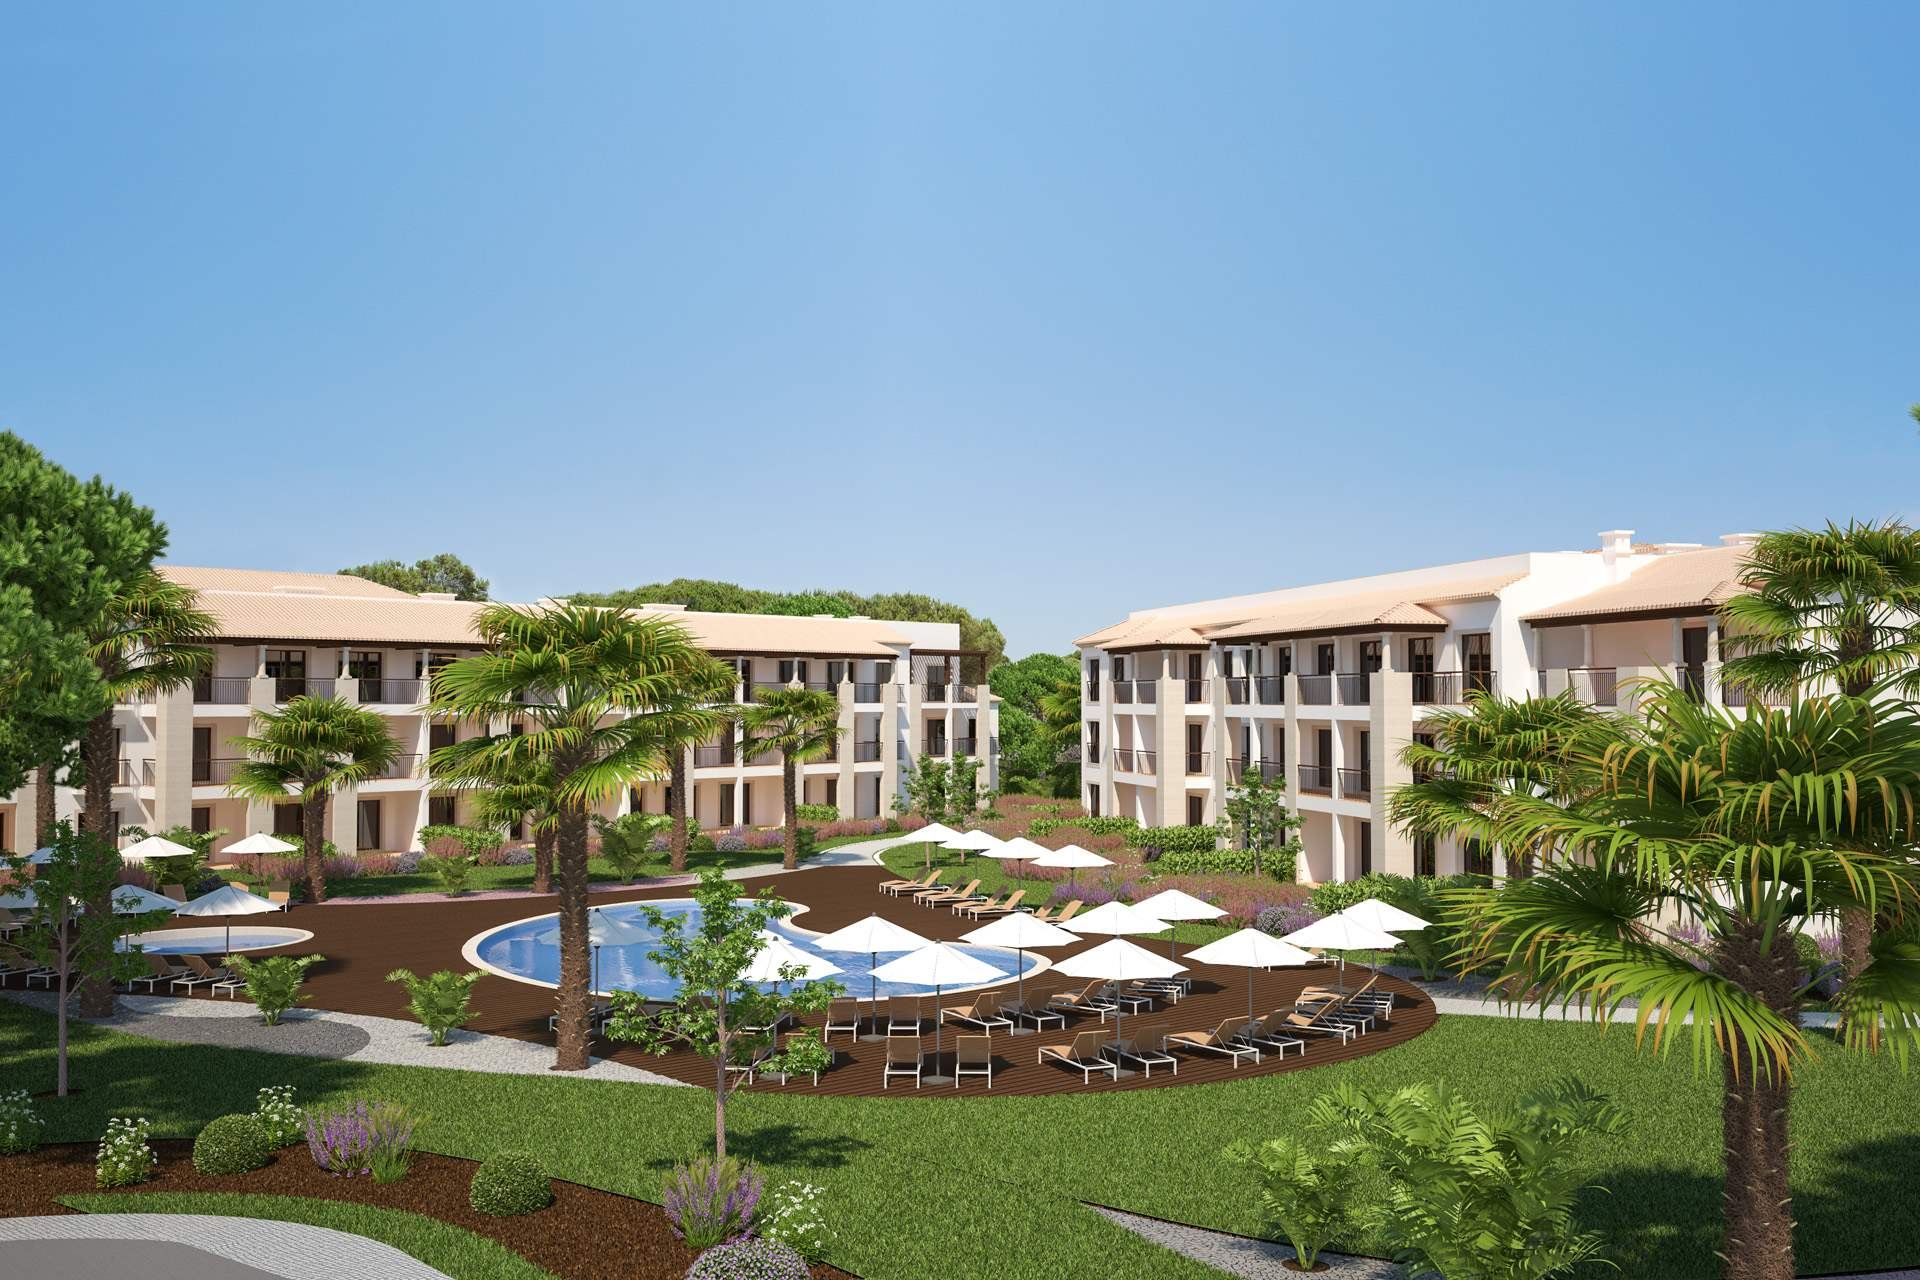 Pine Cliffs Gardens, Two Bedroom Suite, S/C Basis, 2 bedroom apartment in Pine Cliffs Resort, Algarve Photo #9